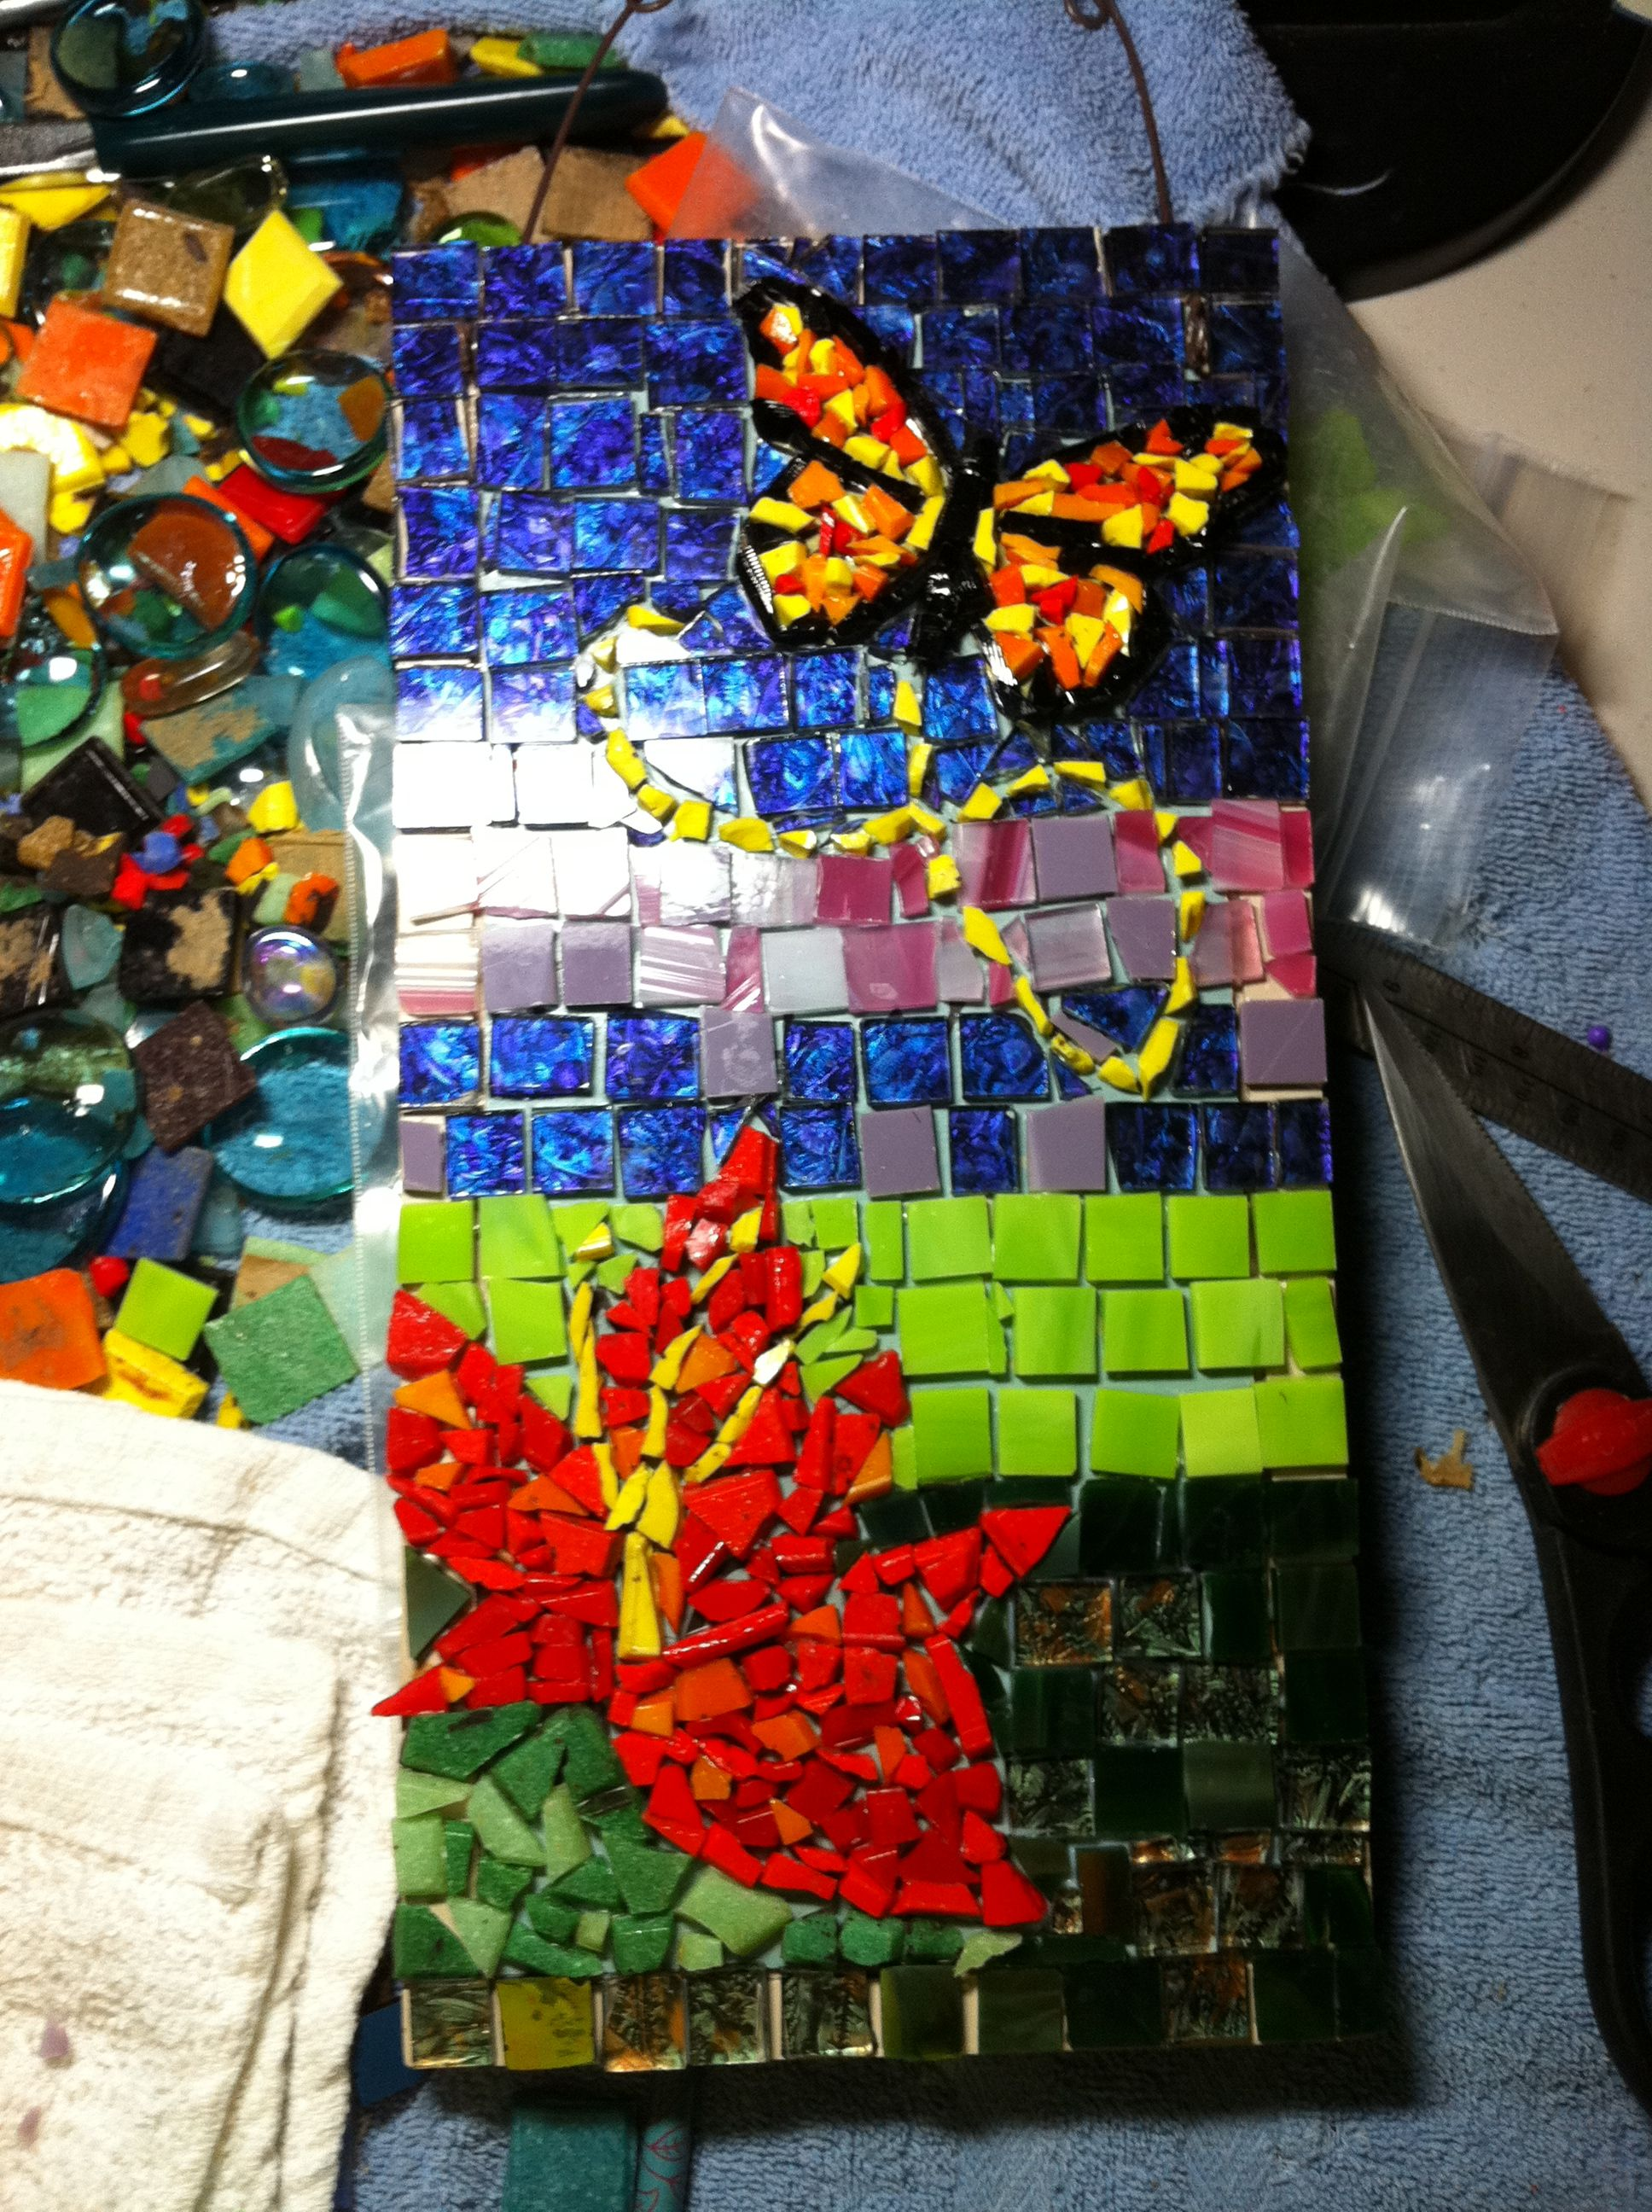 Using an Up-cycled pressed board decorative thingie, I covered it with glass then grouted. It still had the hanger so that was useful